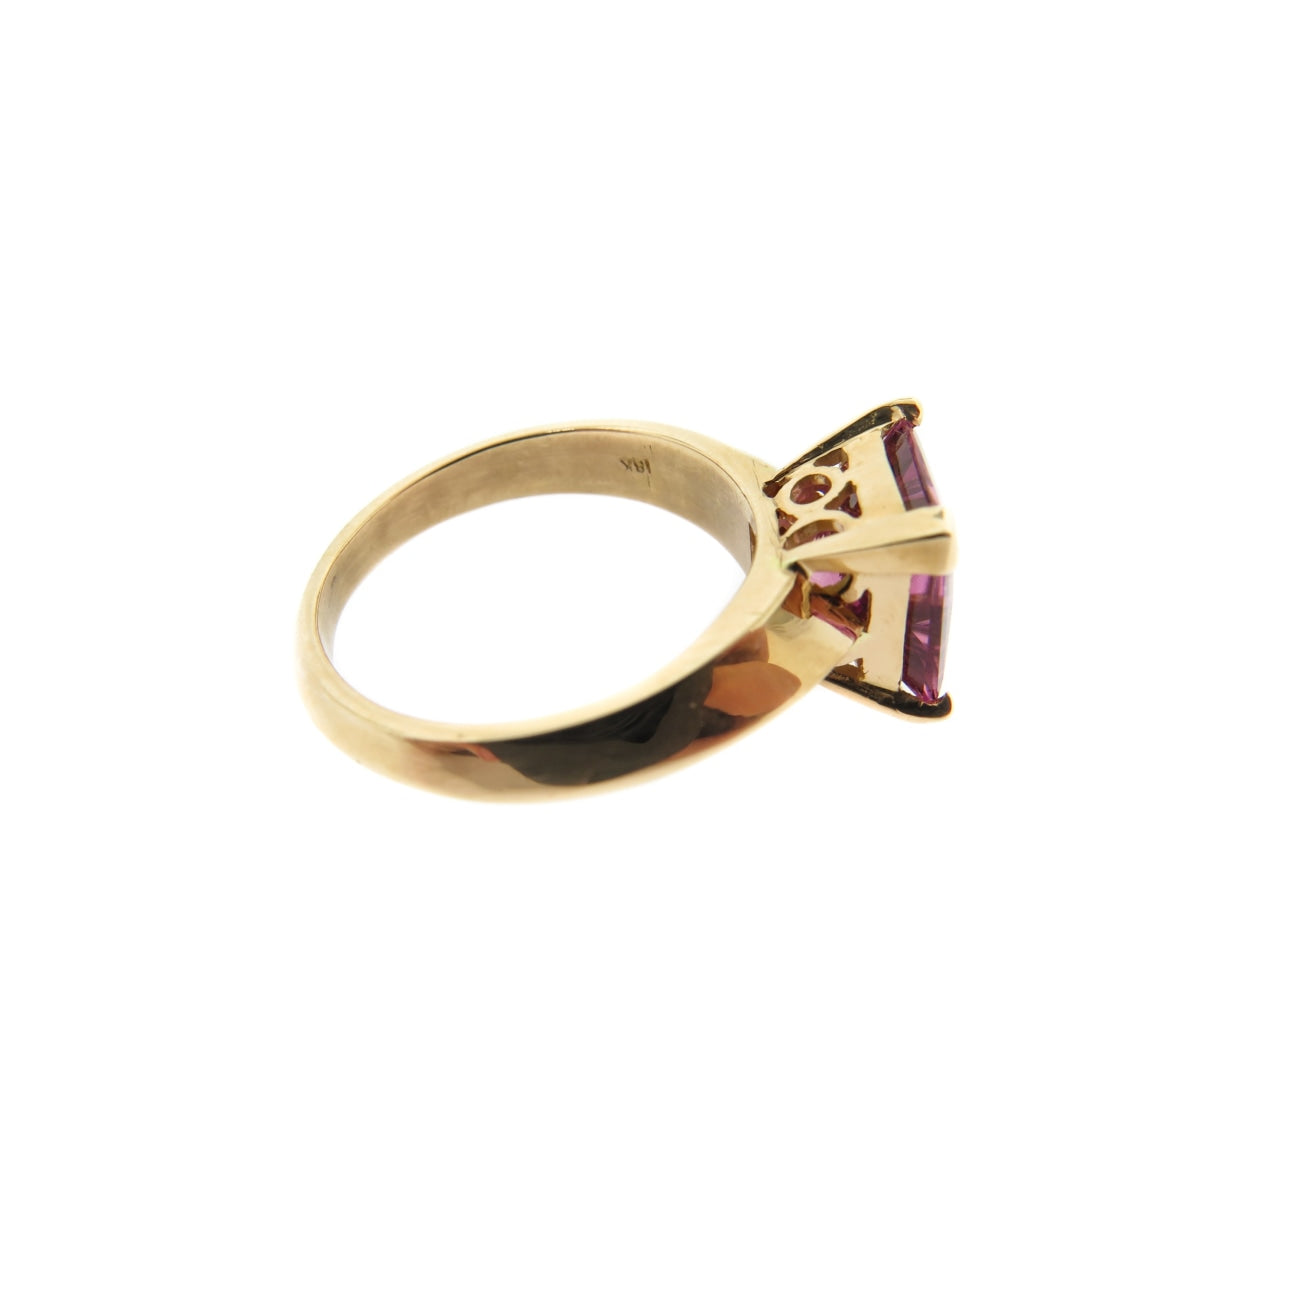 Manfredi Jewels Jewelry - 18k Rose Gold Pink Tourmaline Ring | Manfredi Jewels